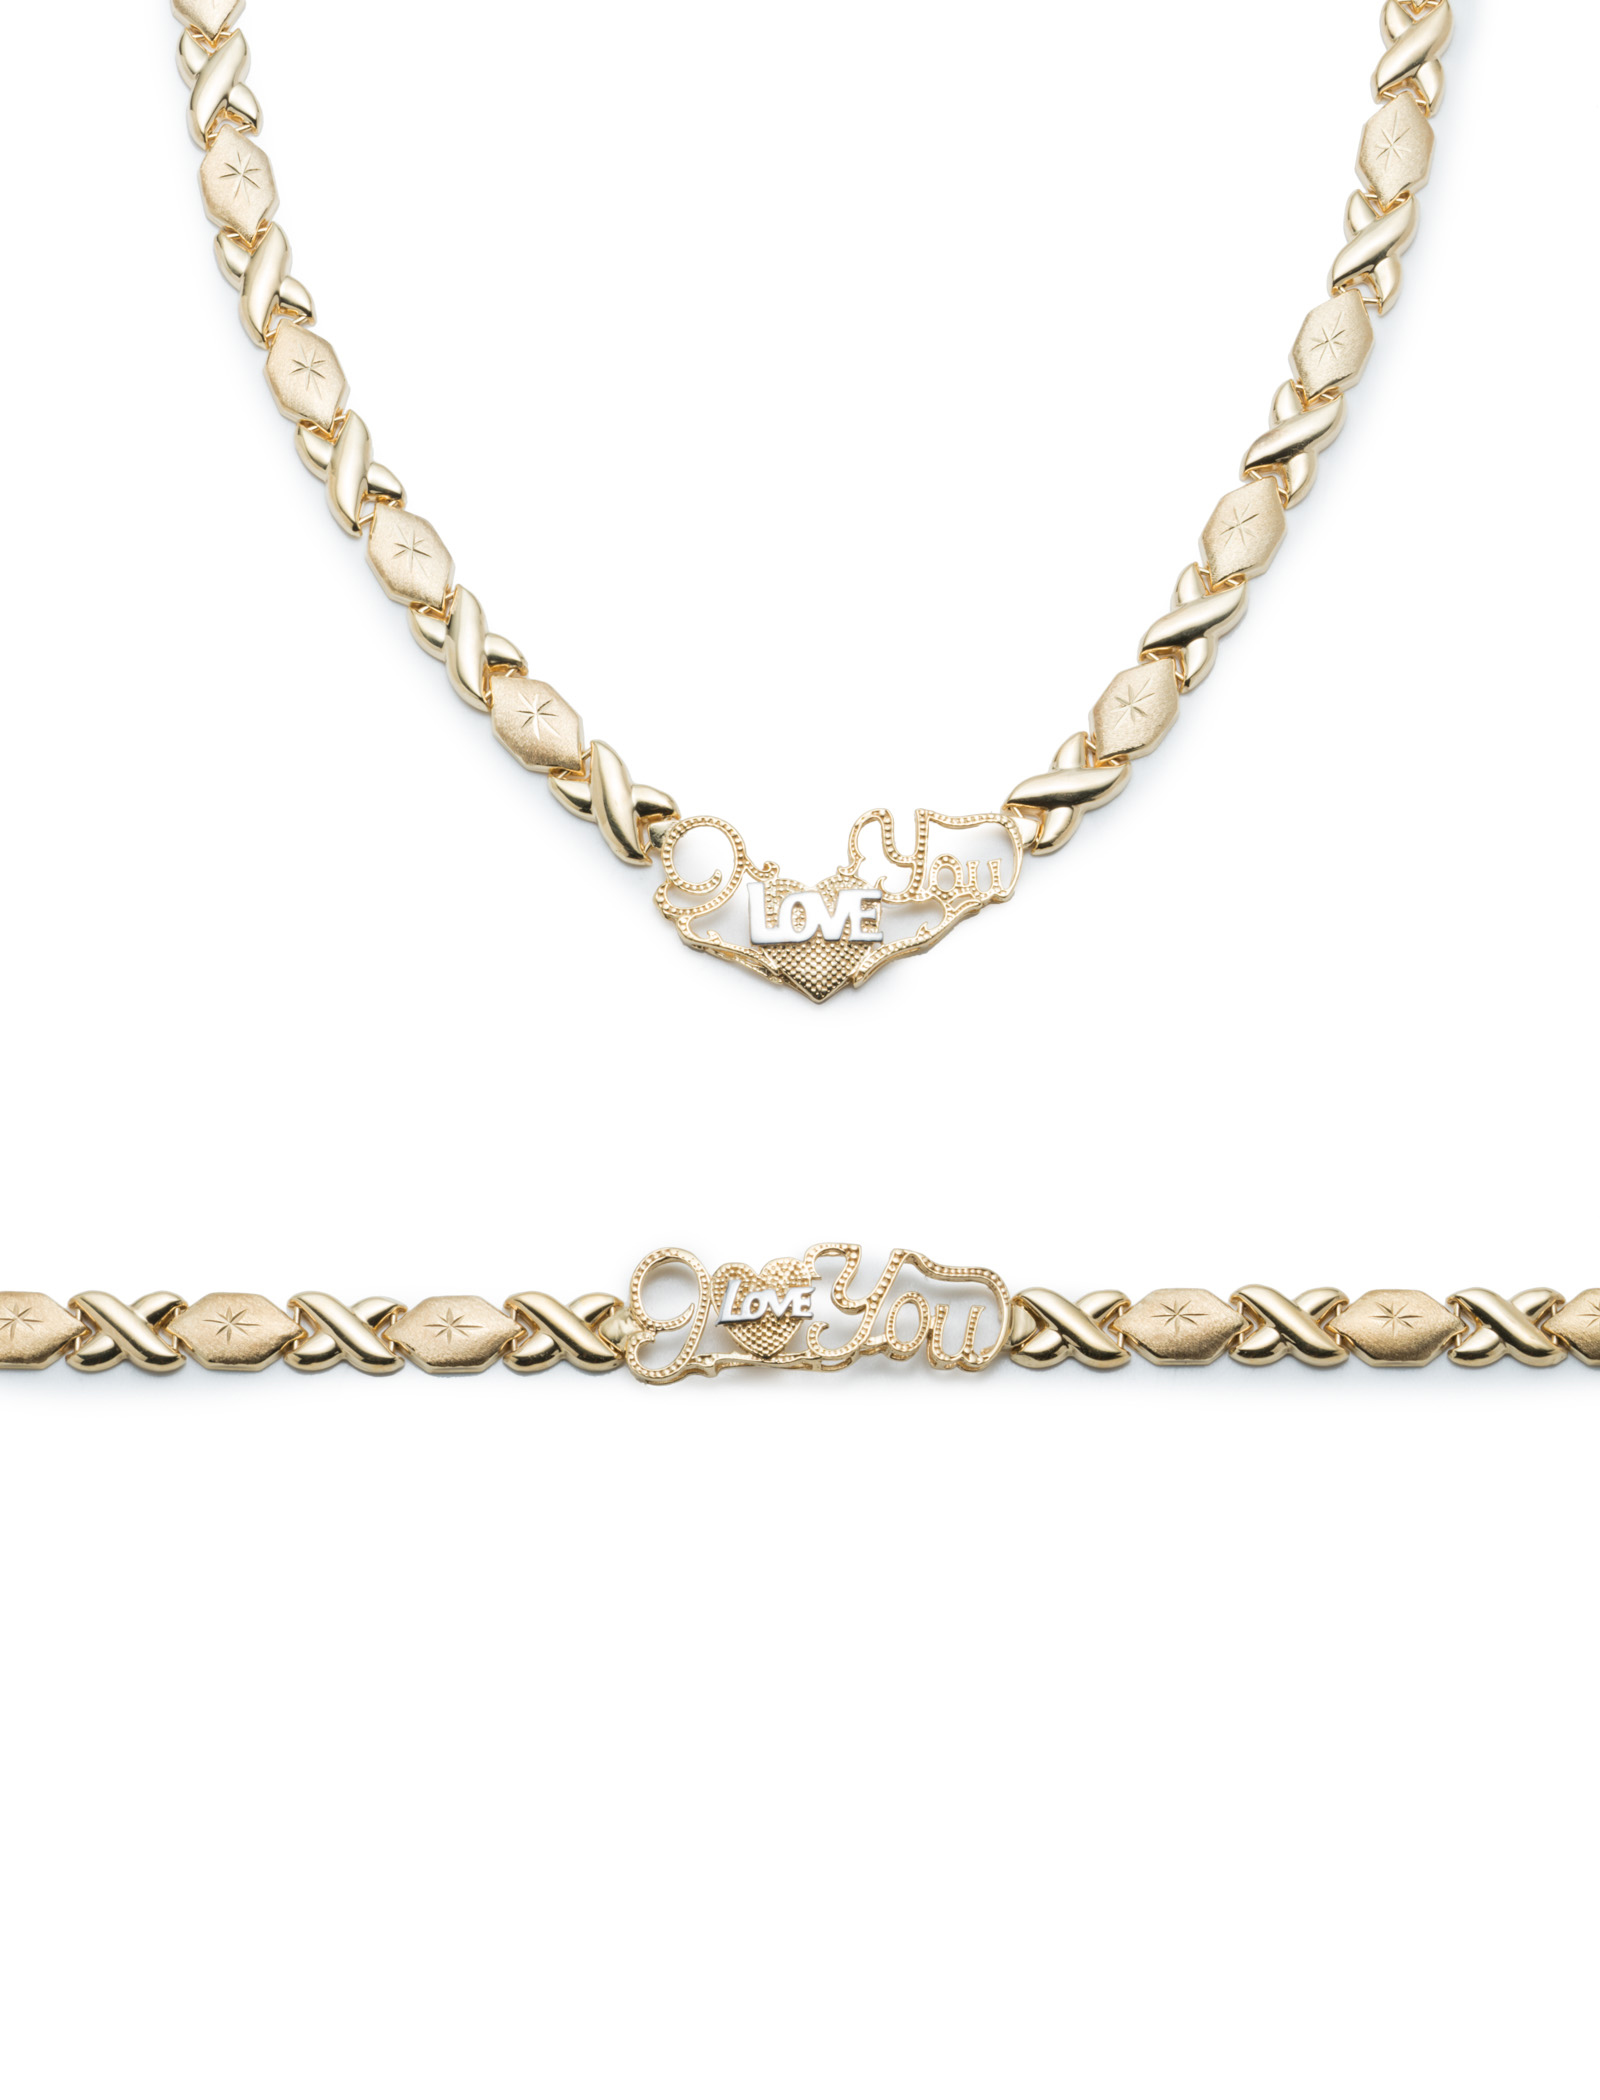 925 real sterling silver I love you xoxo heart set necklace and bracelet hugs and kisses stampato 14k tri color gold tone color